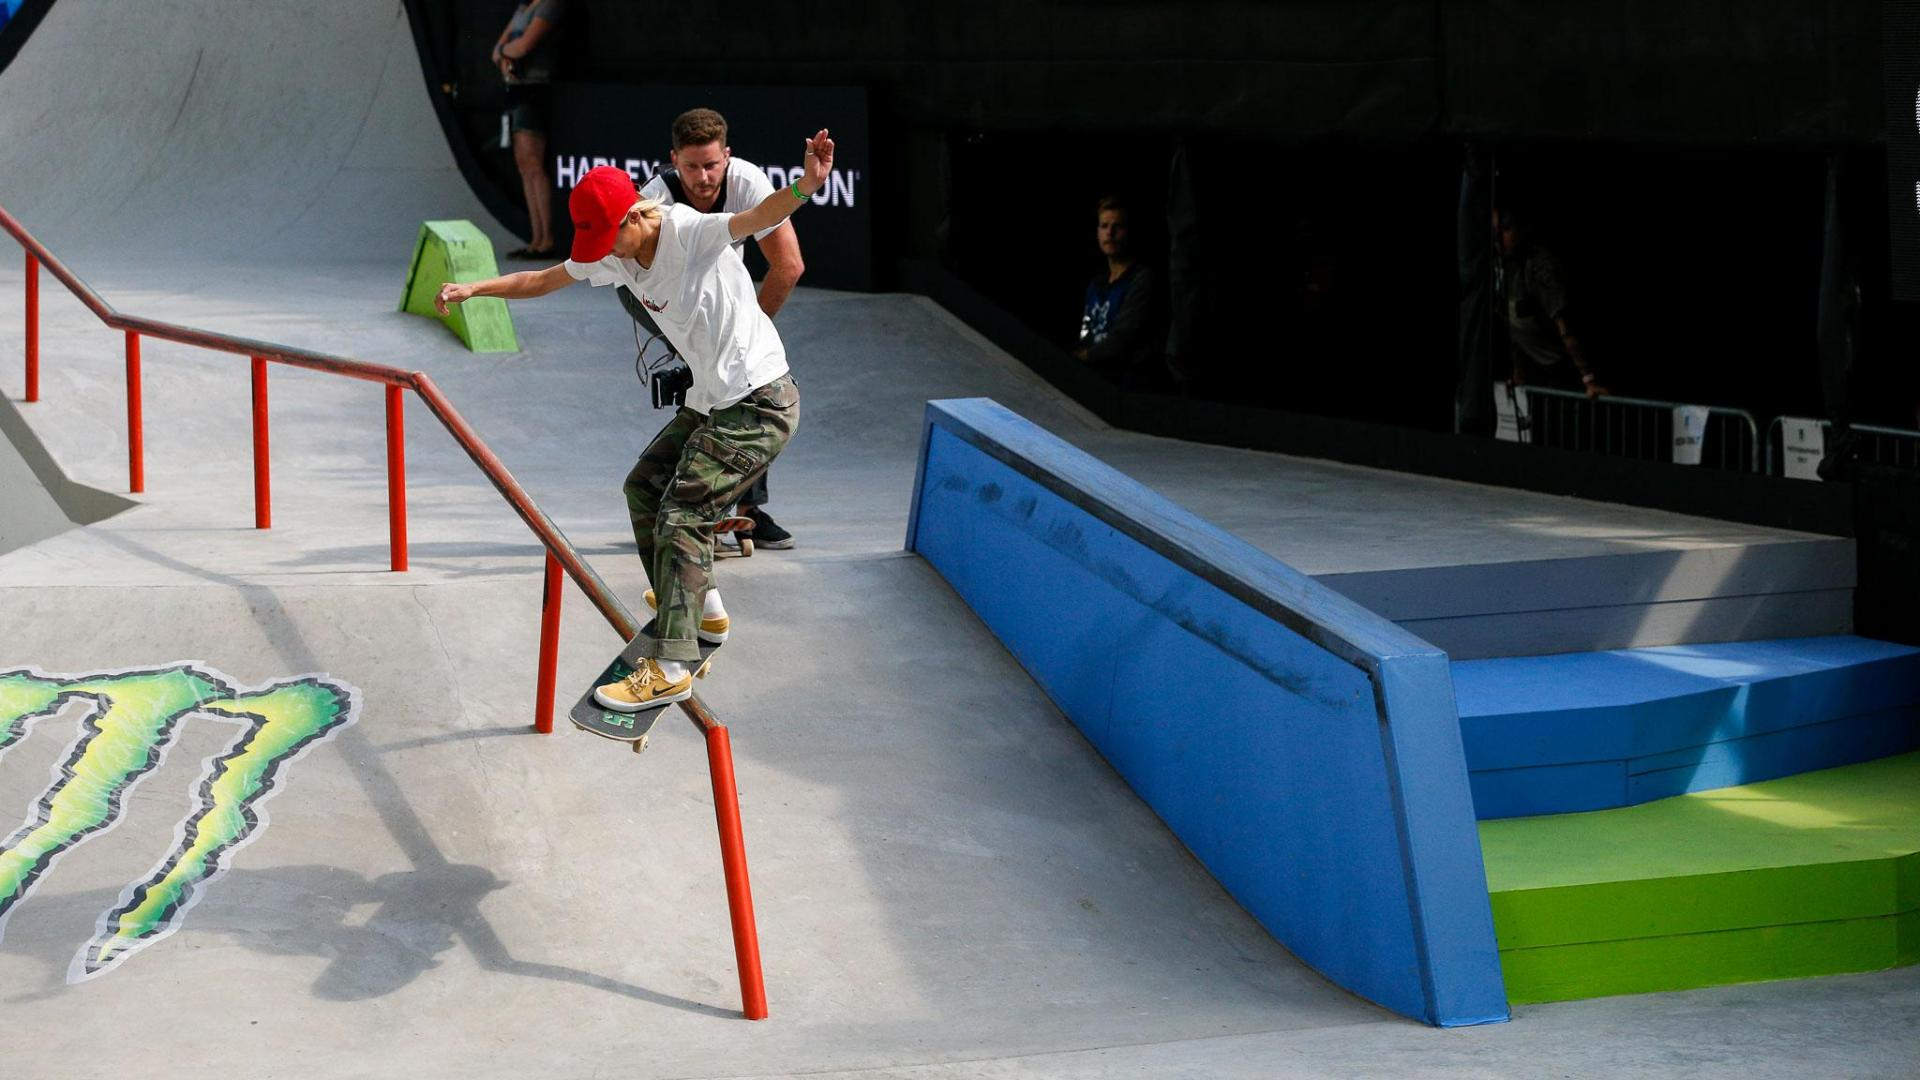 X Games and action sports videos, photos, athletes, events, original